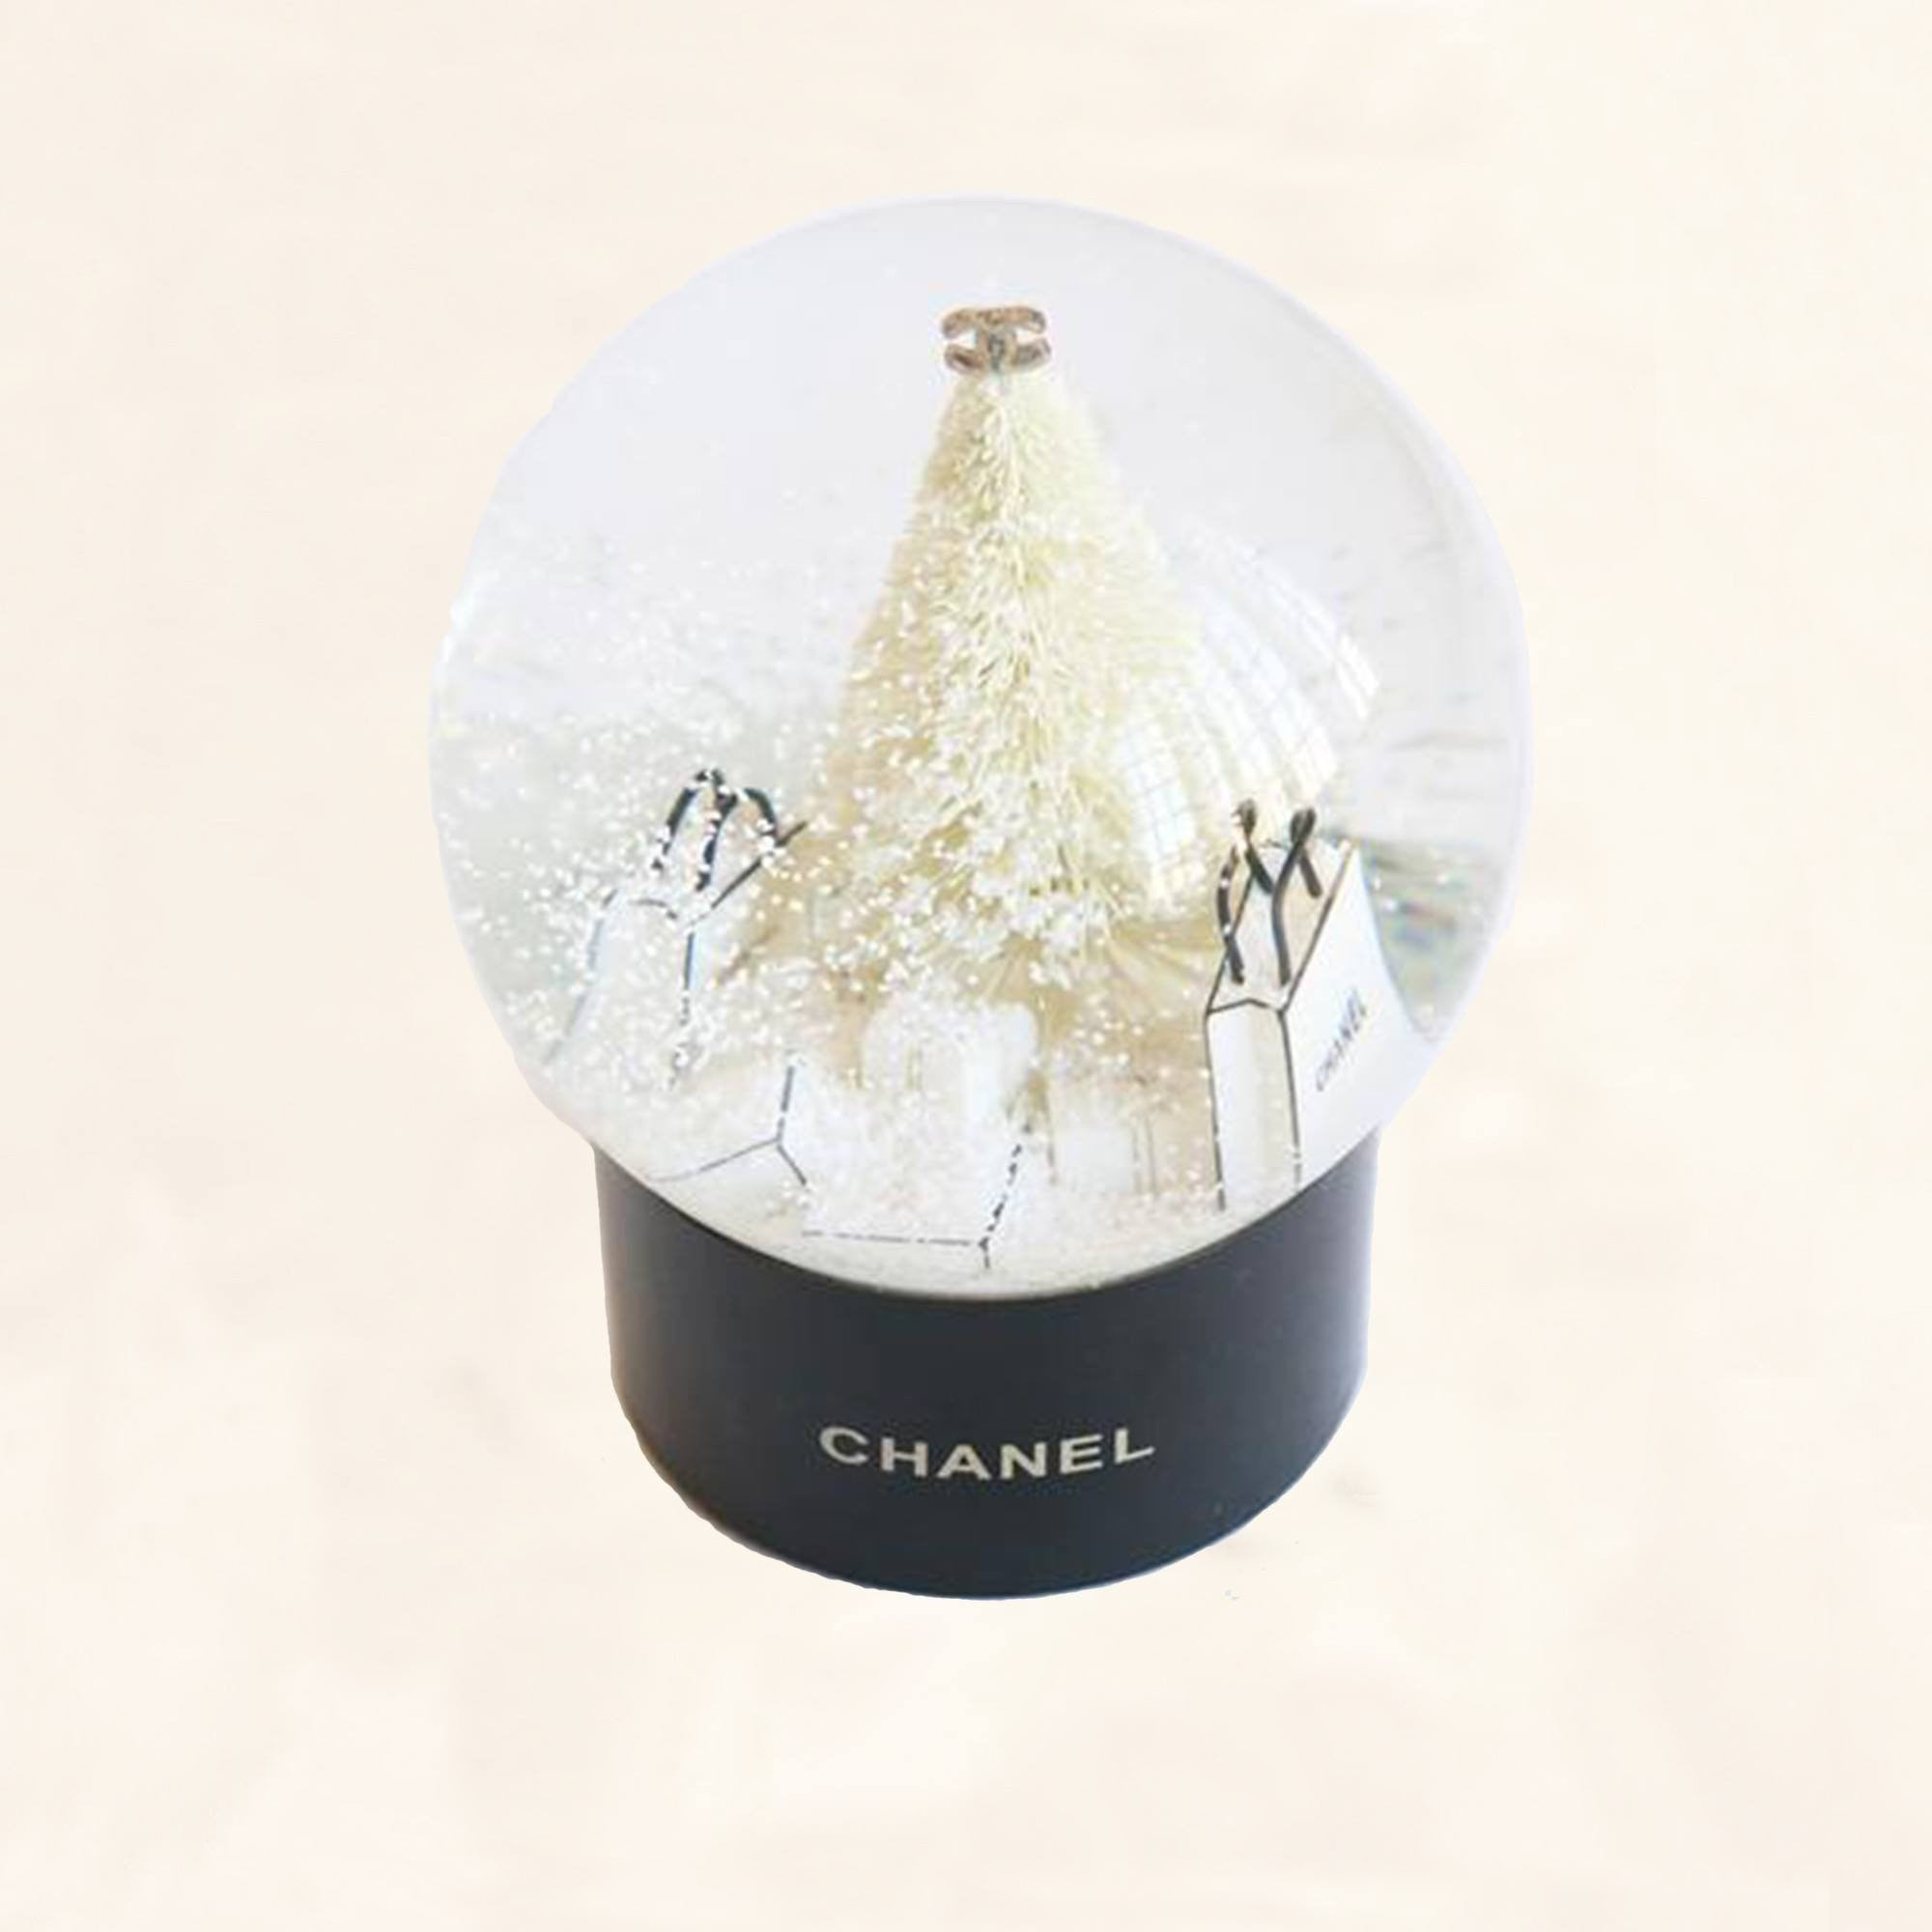 chanel snow globe christmas tree presents large the collectory - Large Christmas Snow Globes